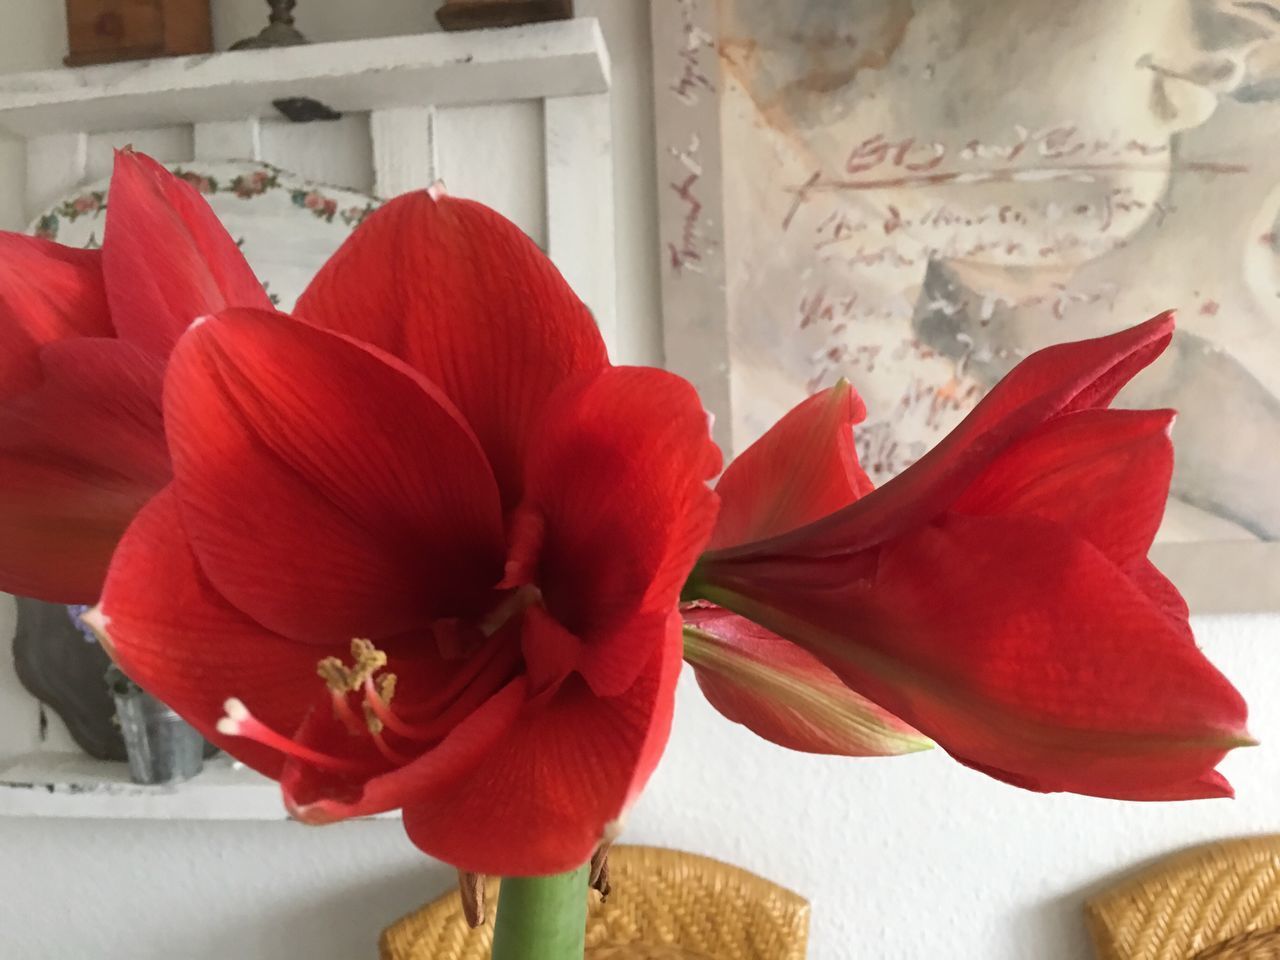 Amaryllis Blume Flower EyeEmFlower Red Petal Flower Head Nature Beauty In Nature Freshness Fragility Close-up Growth Plant No People Day Blooming Outdoors Maroon EyeEm Nature Lover